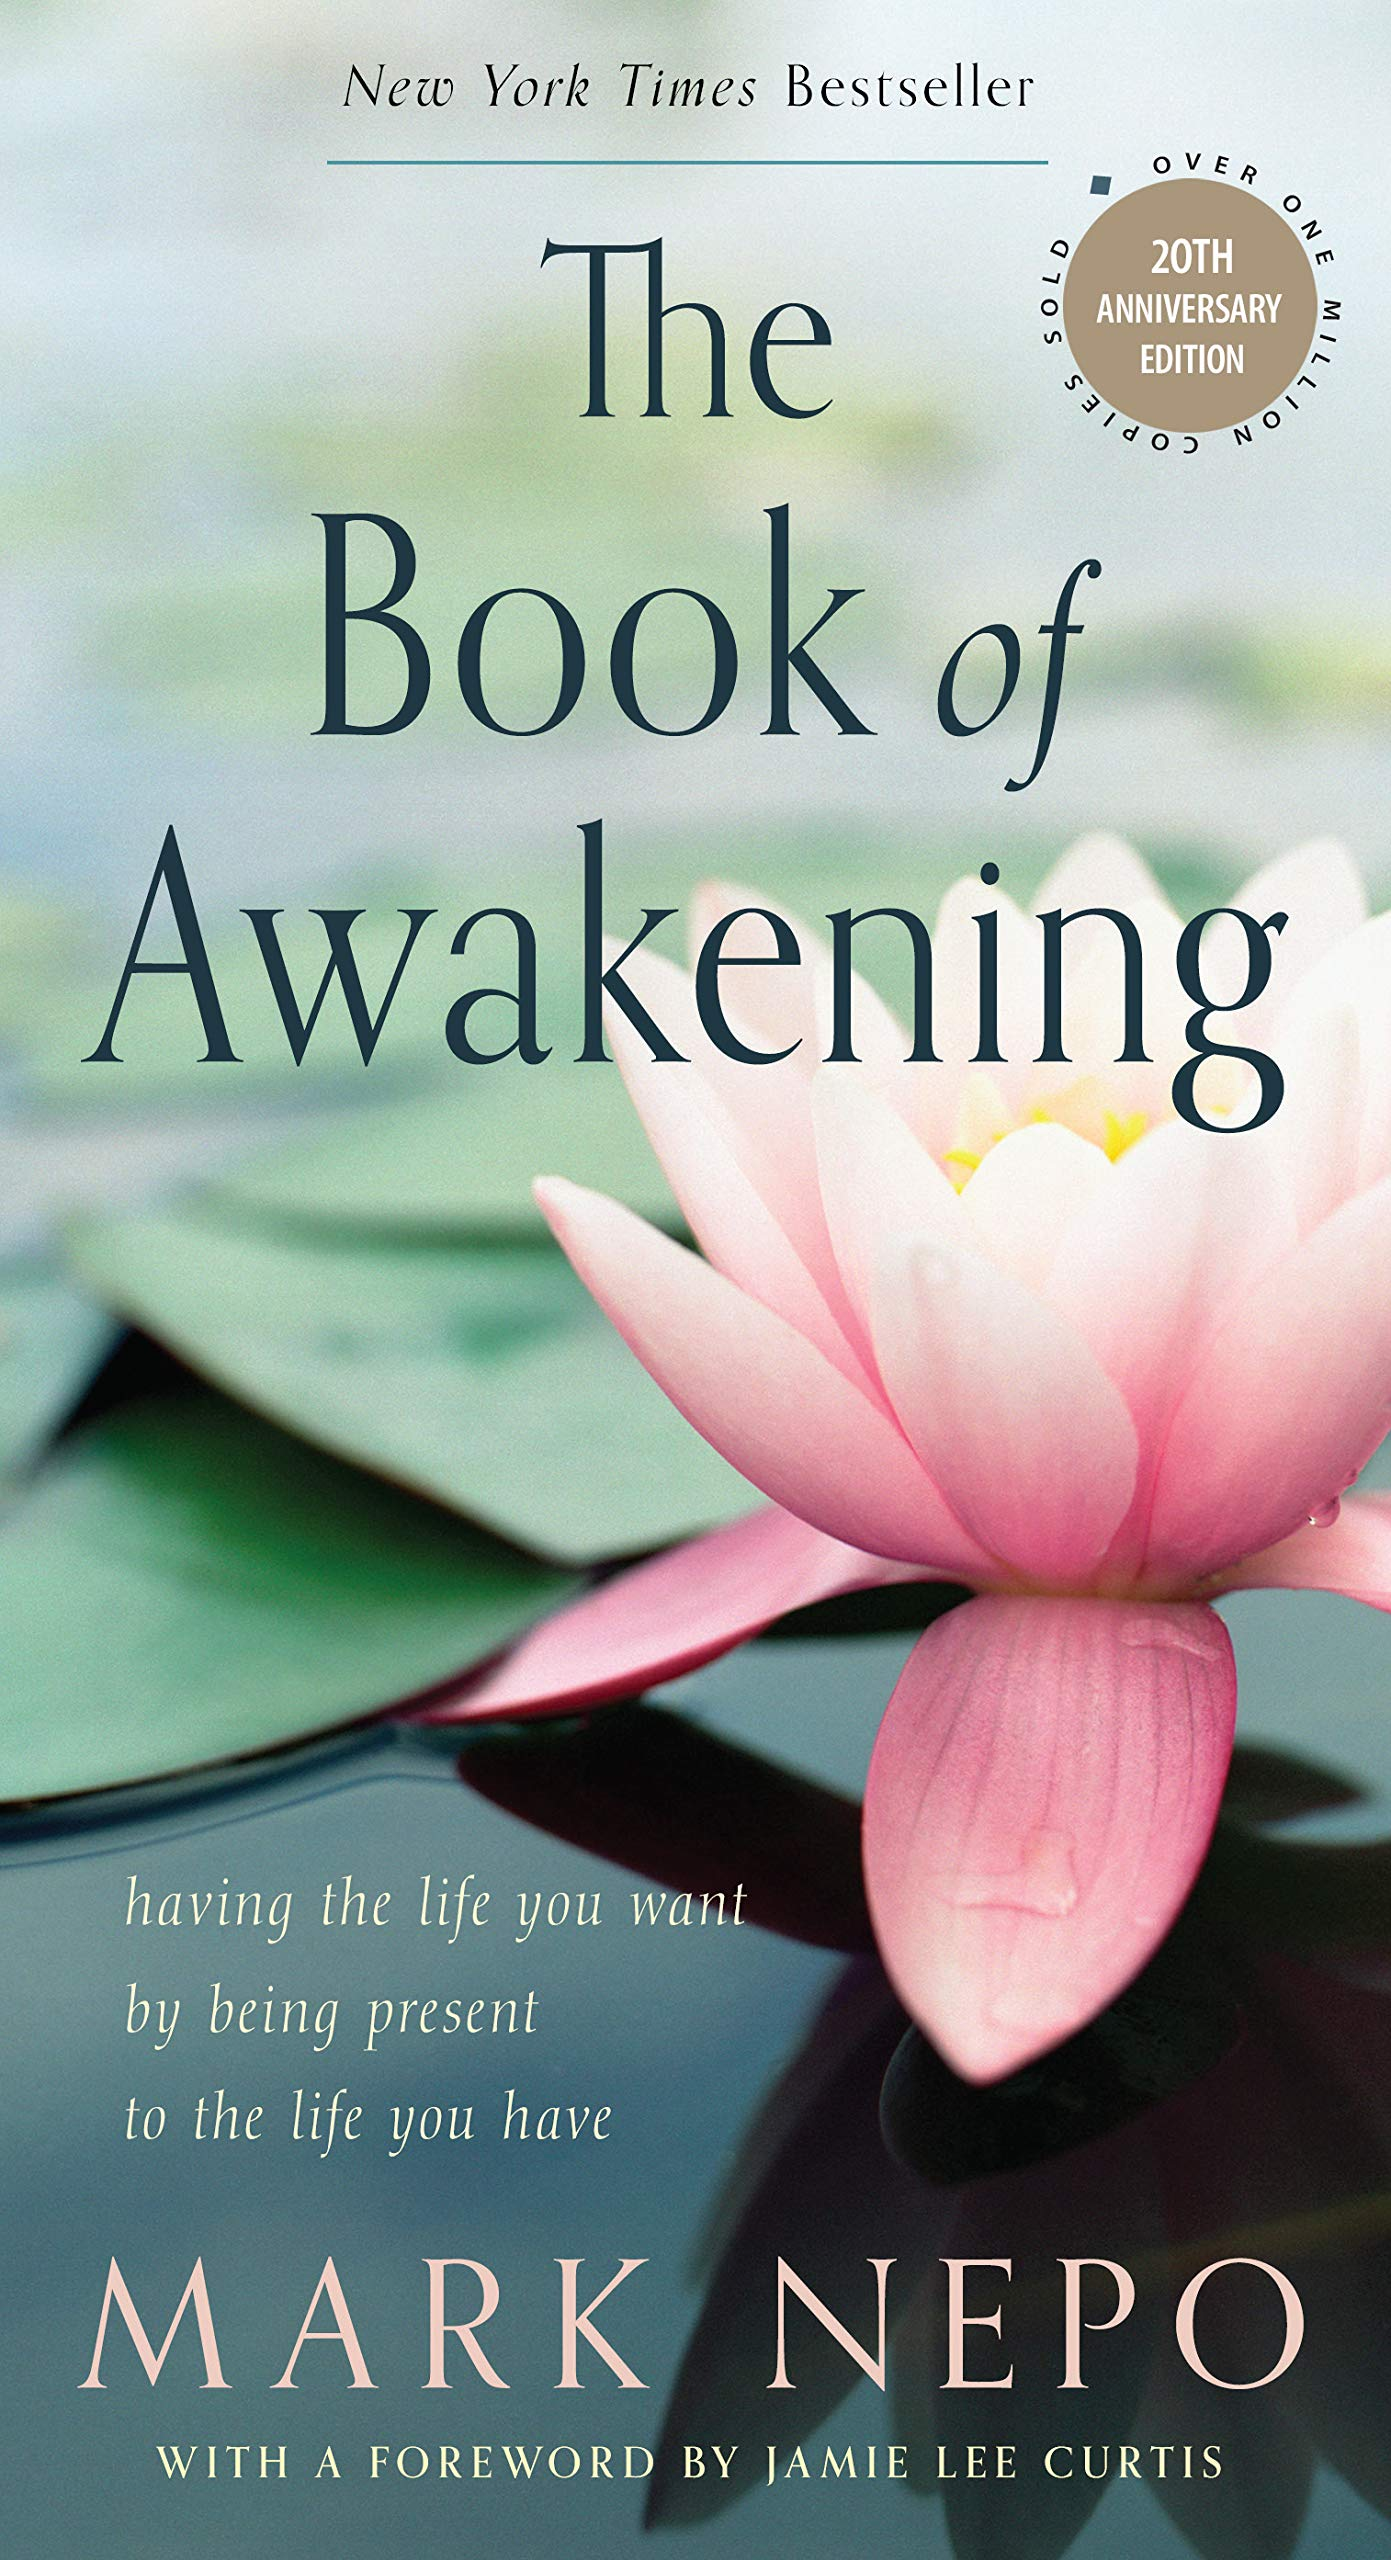 The Book of Awakening: Having the Life You Want by Being Present to the Life You Have (20th Anniversary Edition)